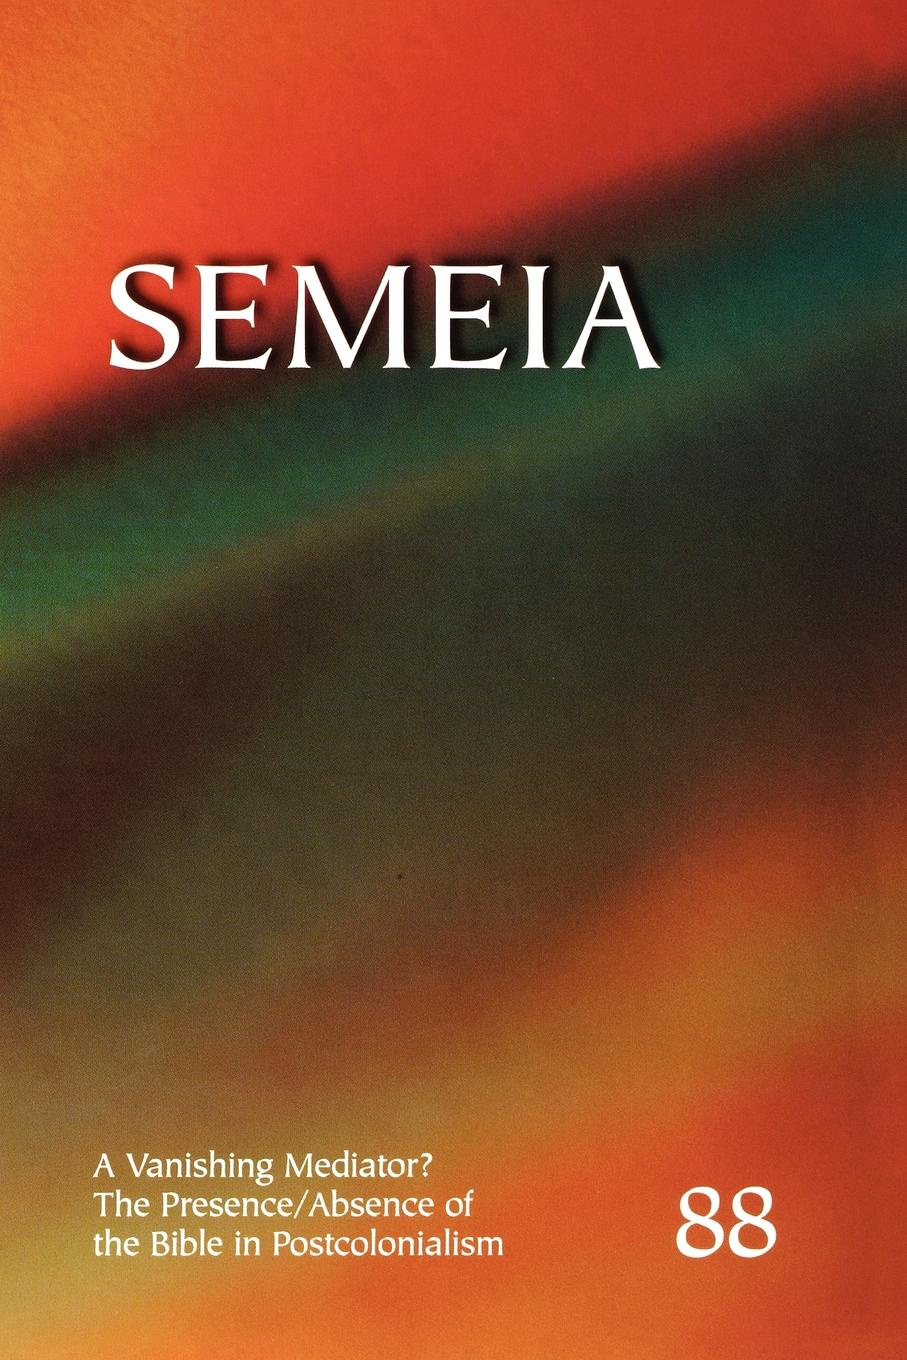 Semeia 88. A Vanishing Mediator: The Presence/Absence of the Bible in Postcolonialism the vanishing of ethan carter